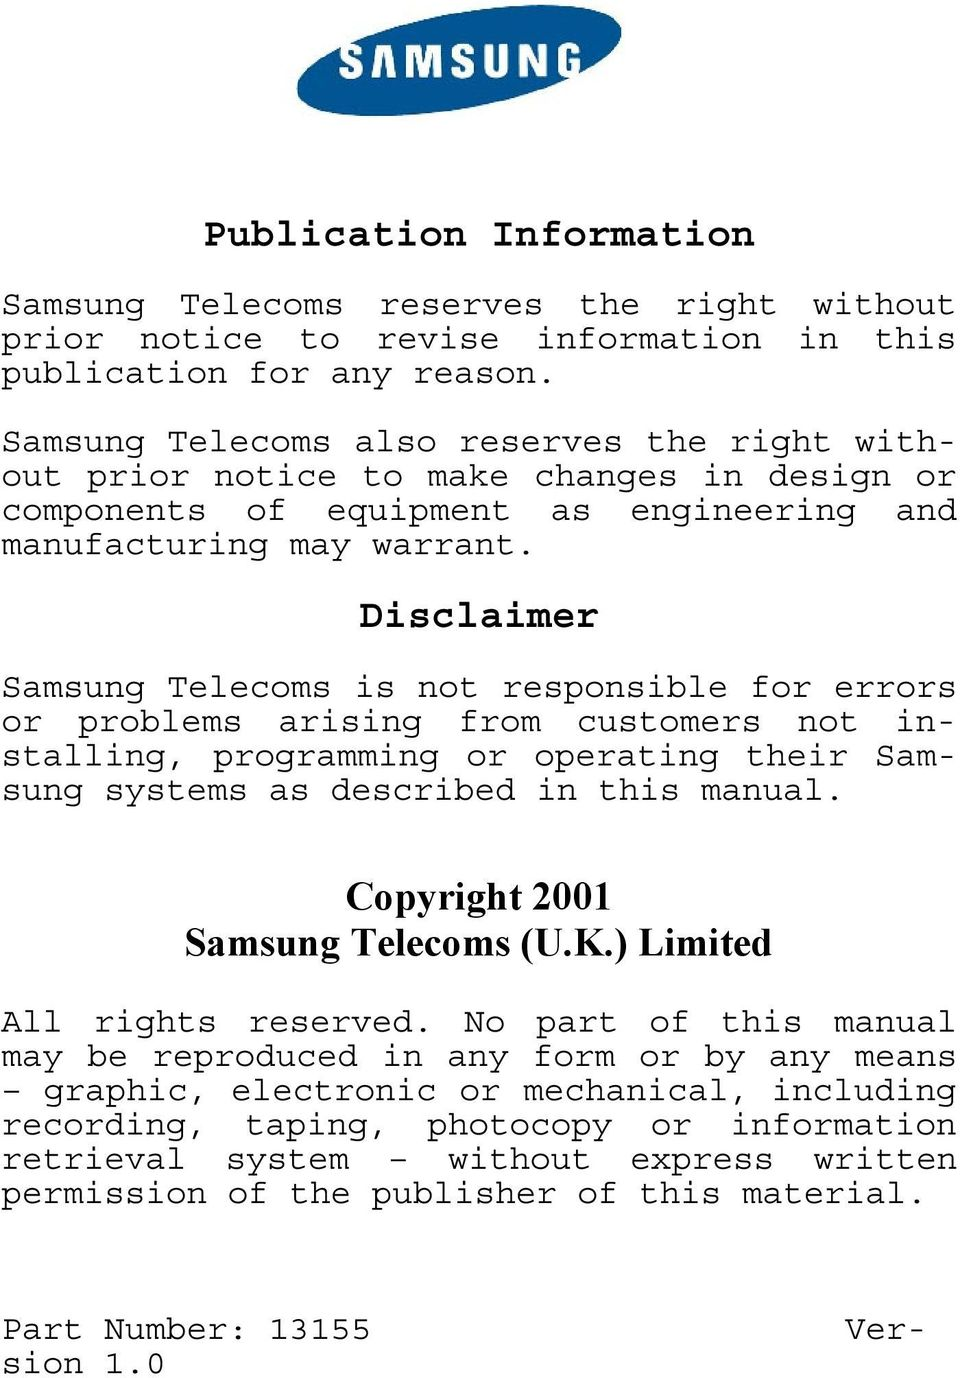 Disclaimer Samsung Telecoms is not responsible for errors or problems arising from customers not installing, programming or operating their Samsung systems as described in this manual.